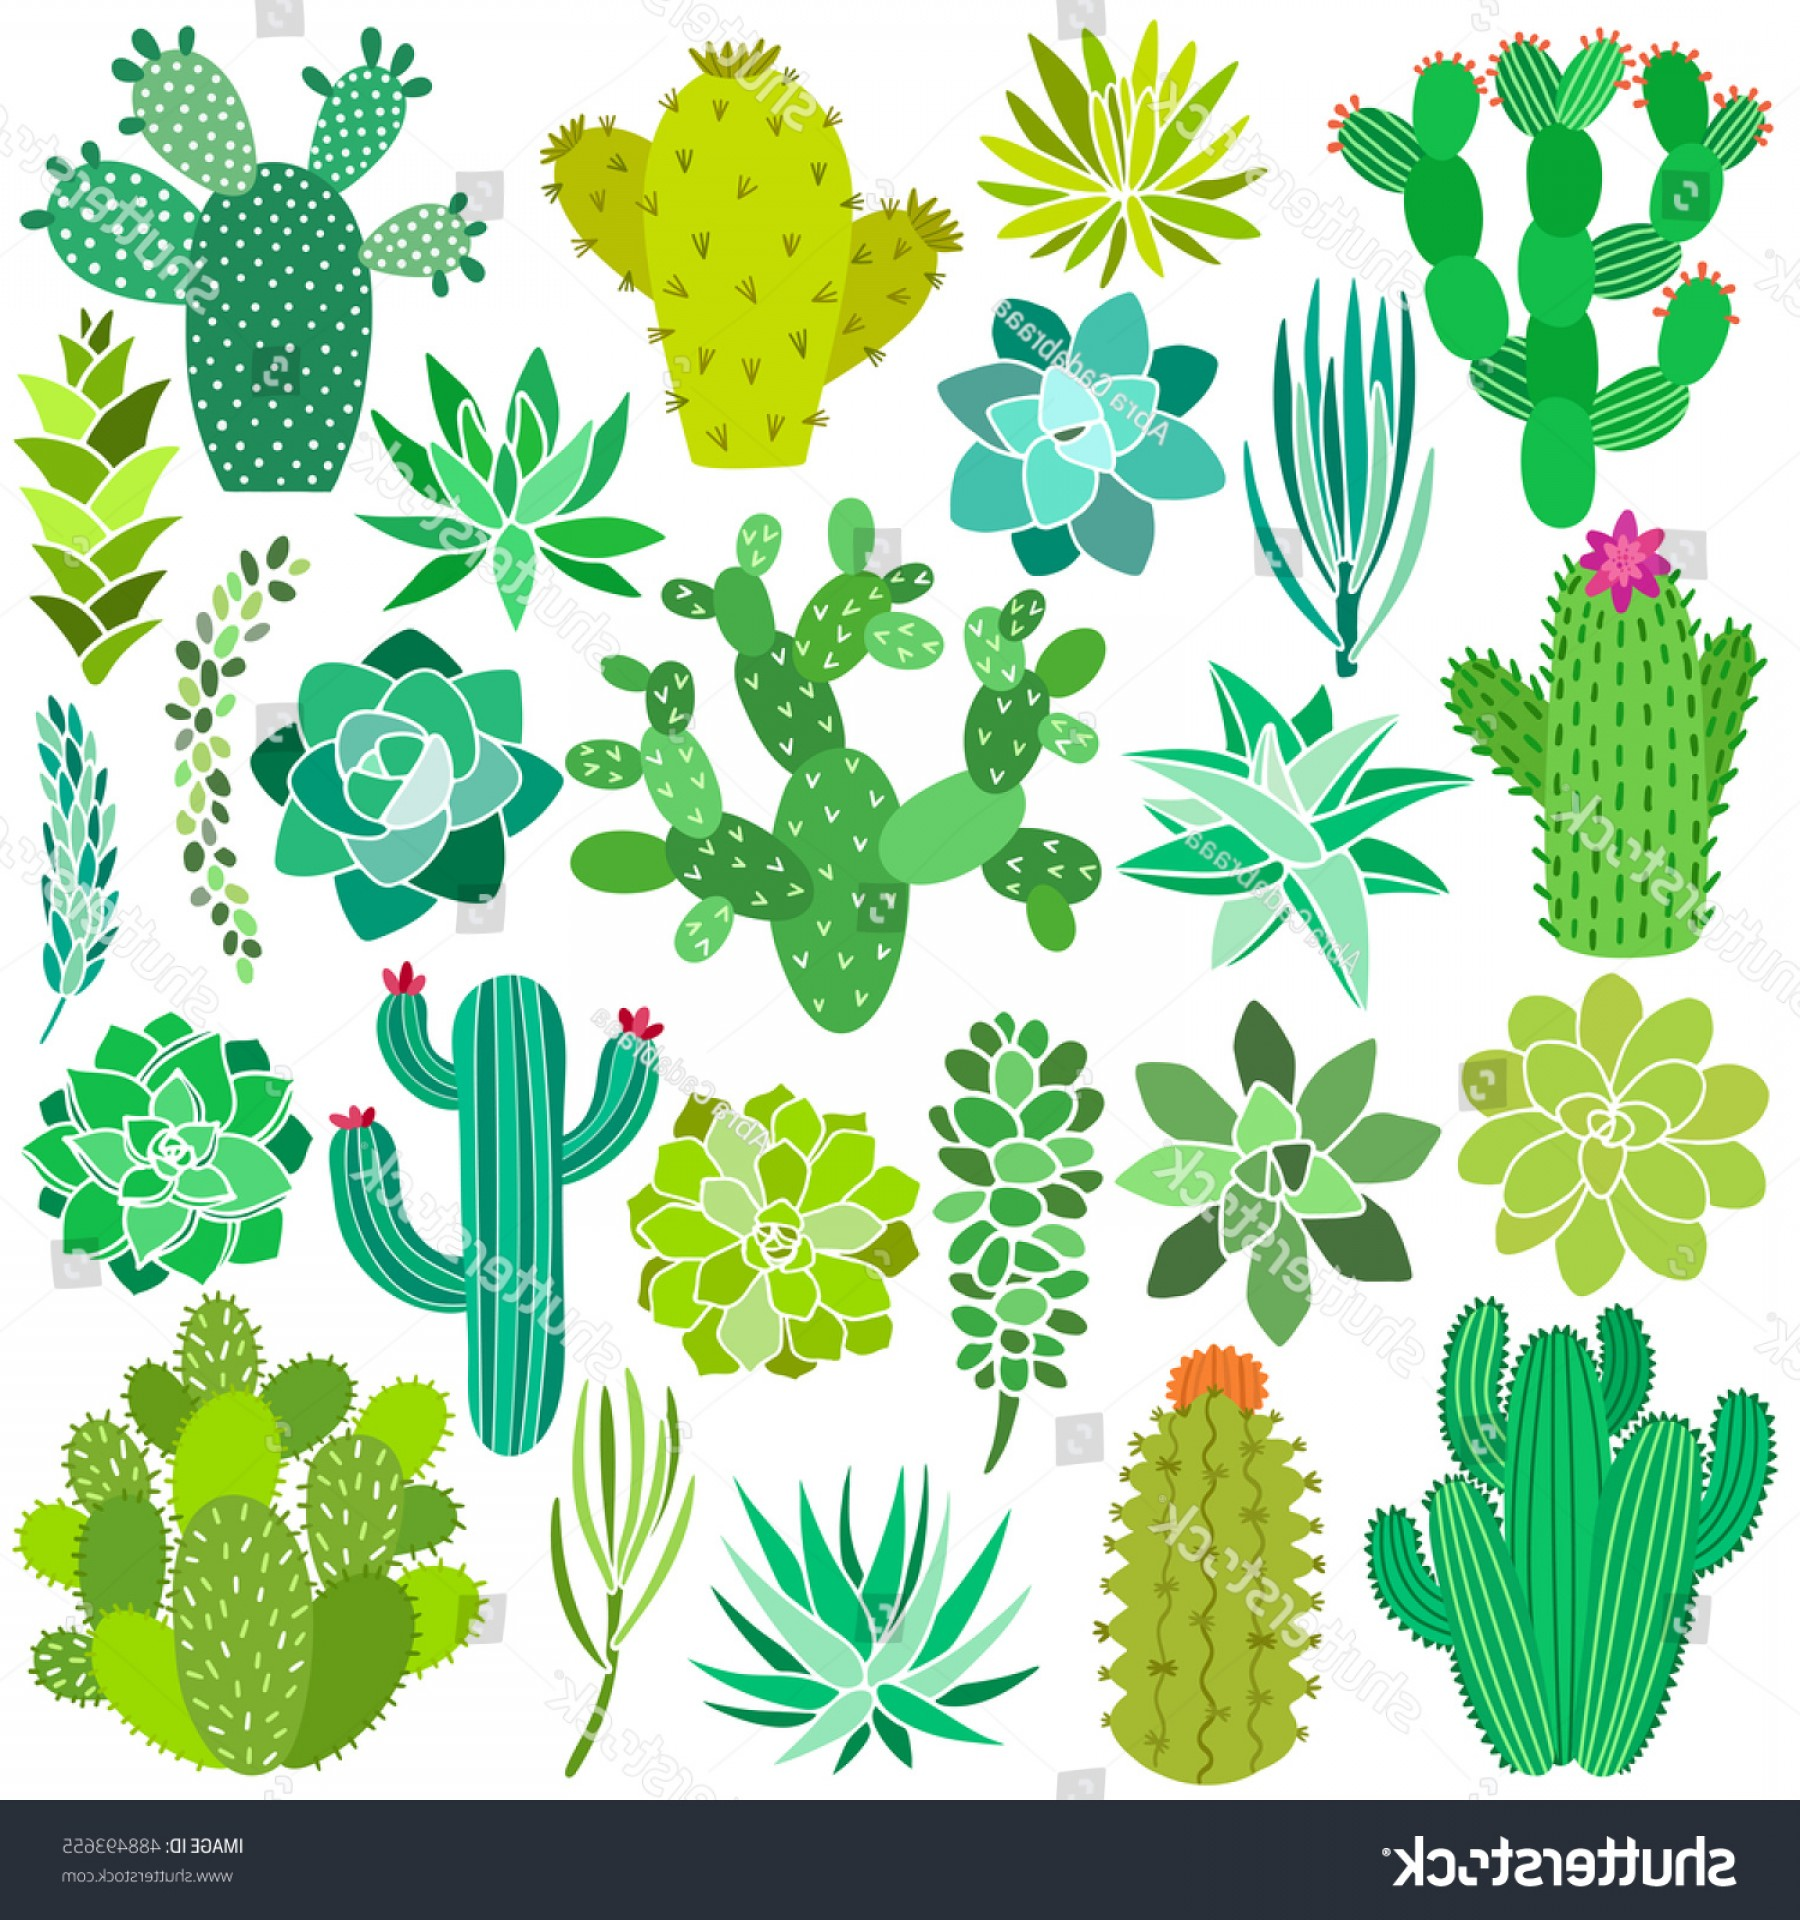 Cactus And Flower Vector: Cactus Succulent Flower Vector Illustrations Hand